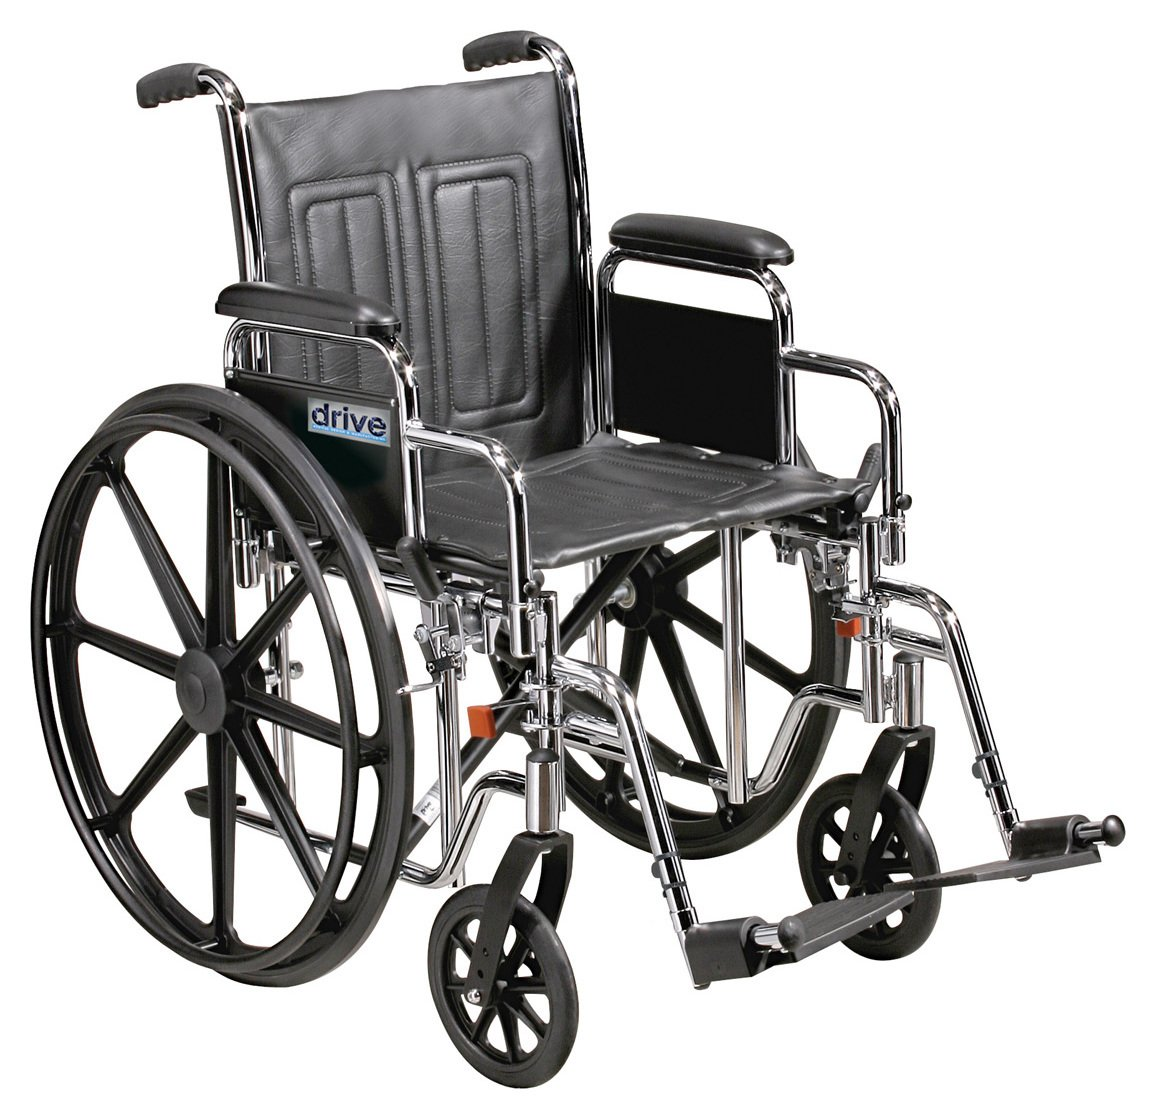 Sentra EC22 Self Propelled Wheelchair.